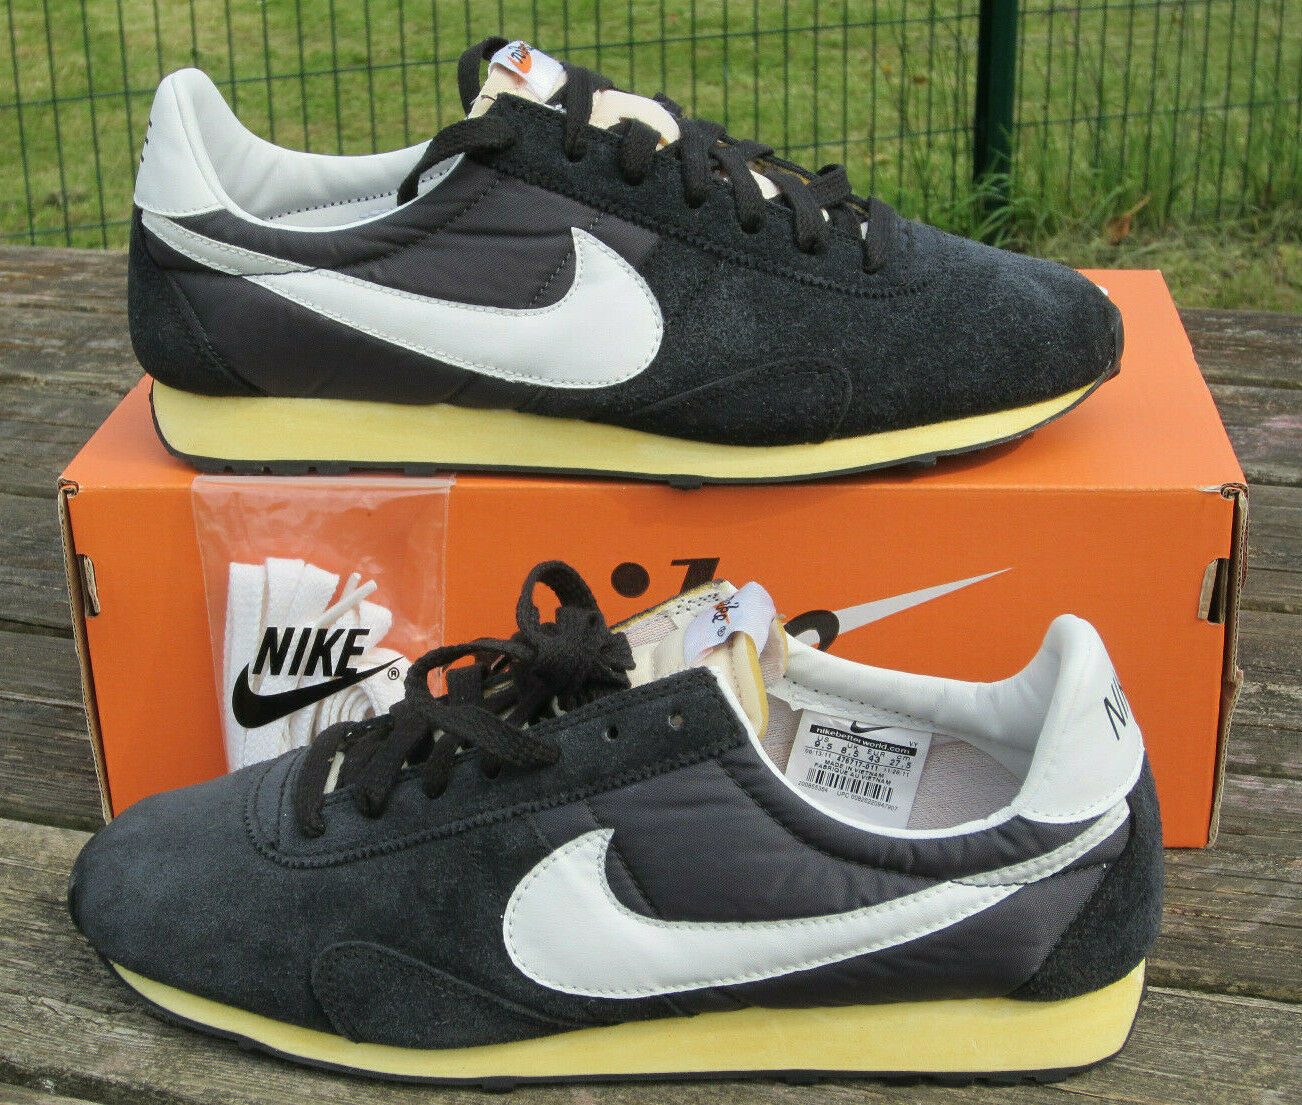 RARE - DEADSTOCK 2011 - VINTAGE QS NIKE PRE MONTREAL RACER WAFFLE - 9.5 US